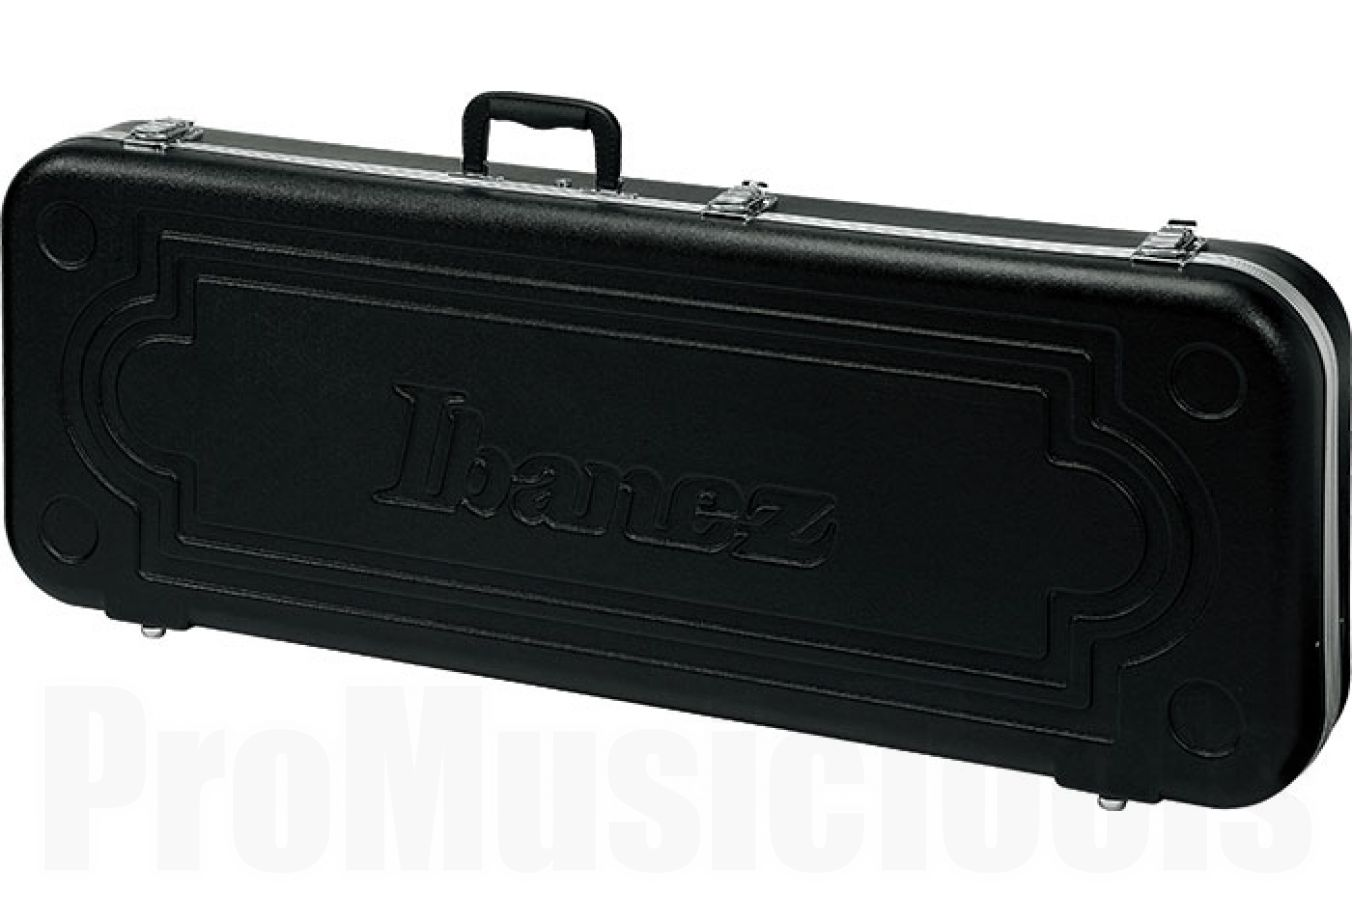 Ibanez M20RG Formfit Case for Ibanez RG